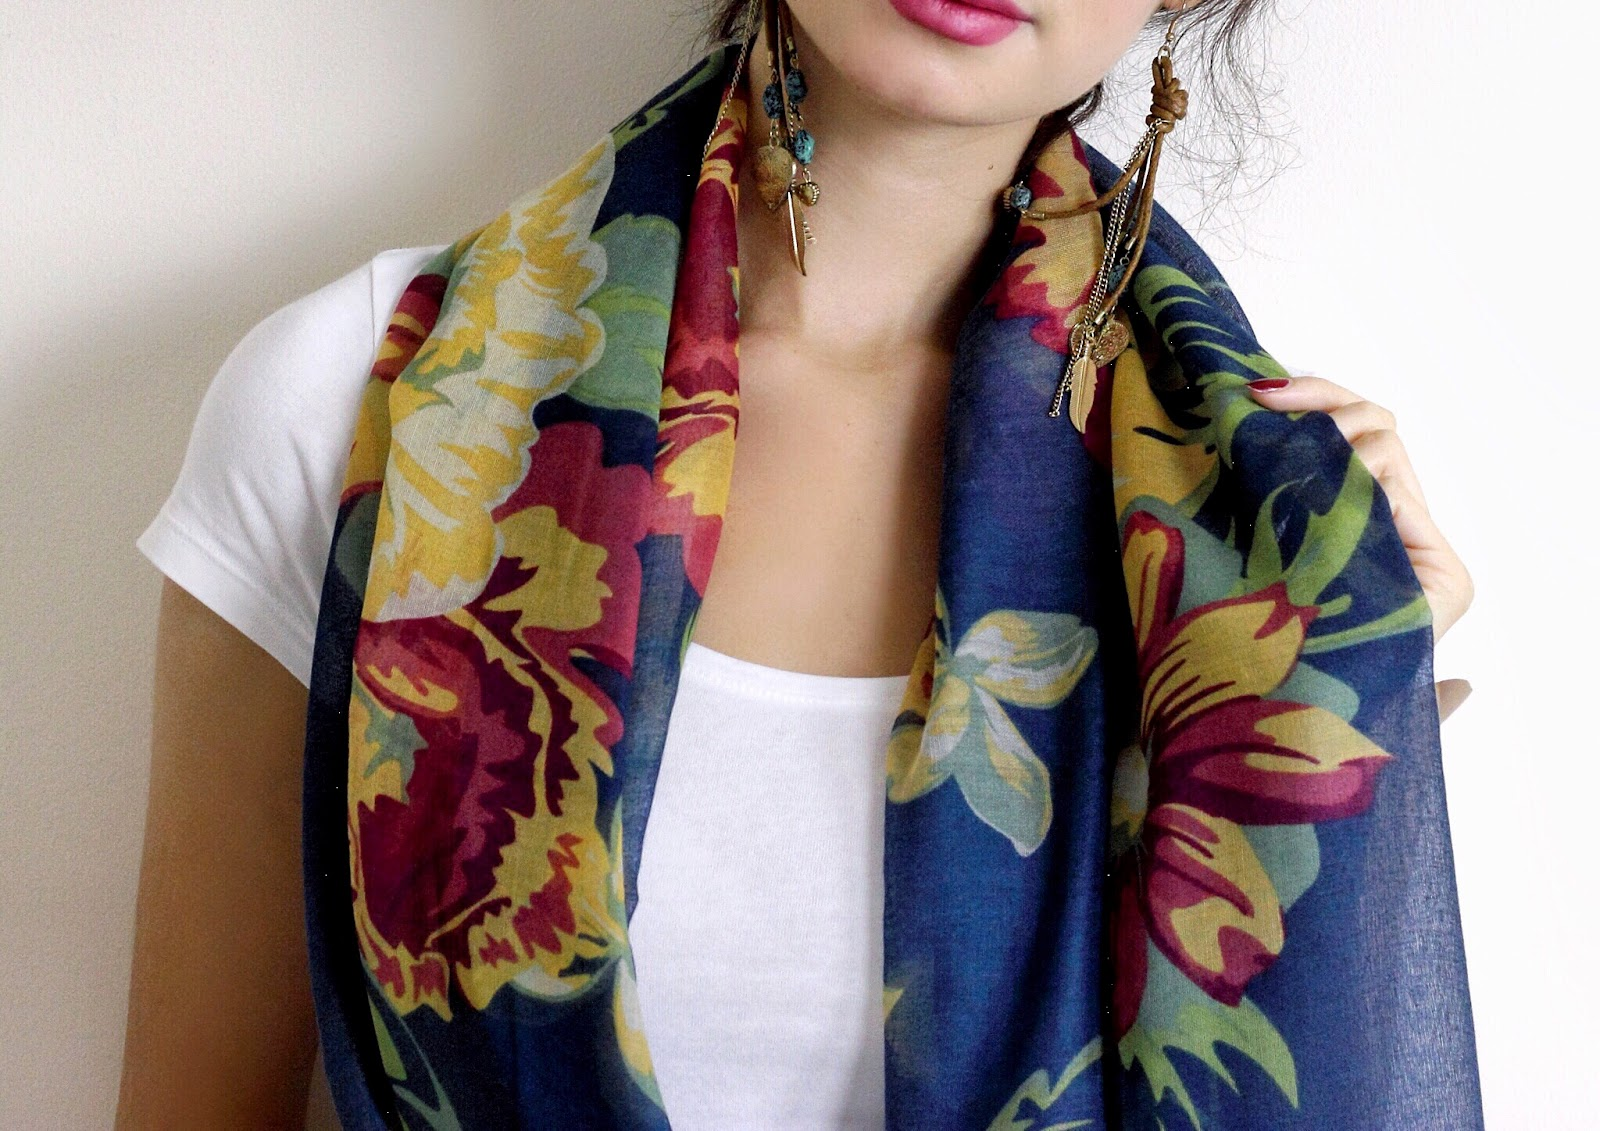 powder, powder scarf, powder collaboration, ootd, british blogger, makeup blogger, fashion blogger, lifestyle blogger, beauty blogger, fashion, style, floral scarf, long earrings, pink lipstick, anasofiachic, style a scarf, how to